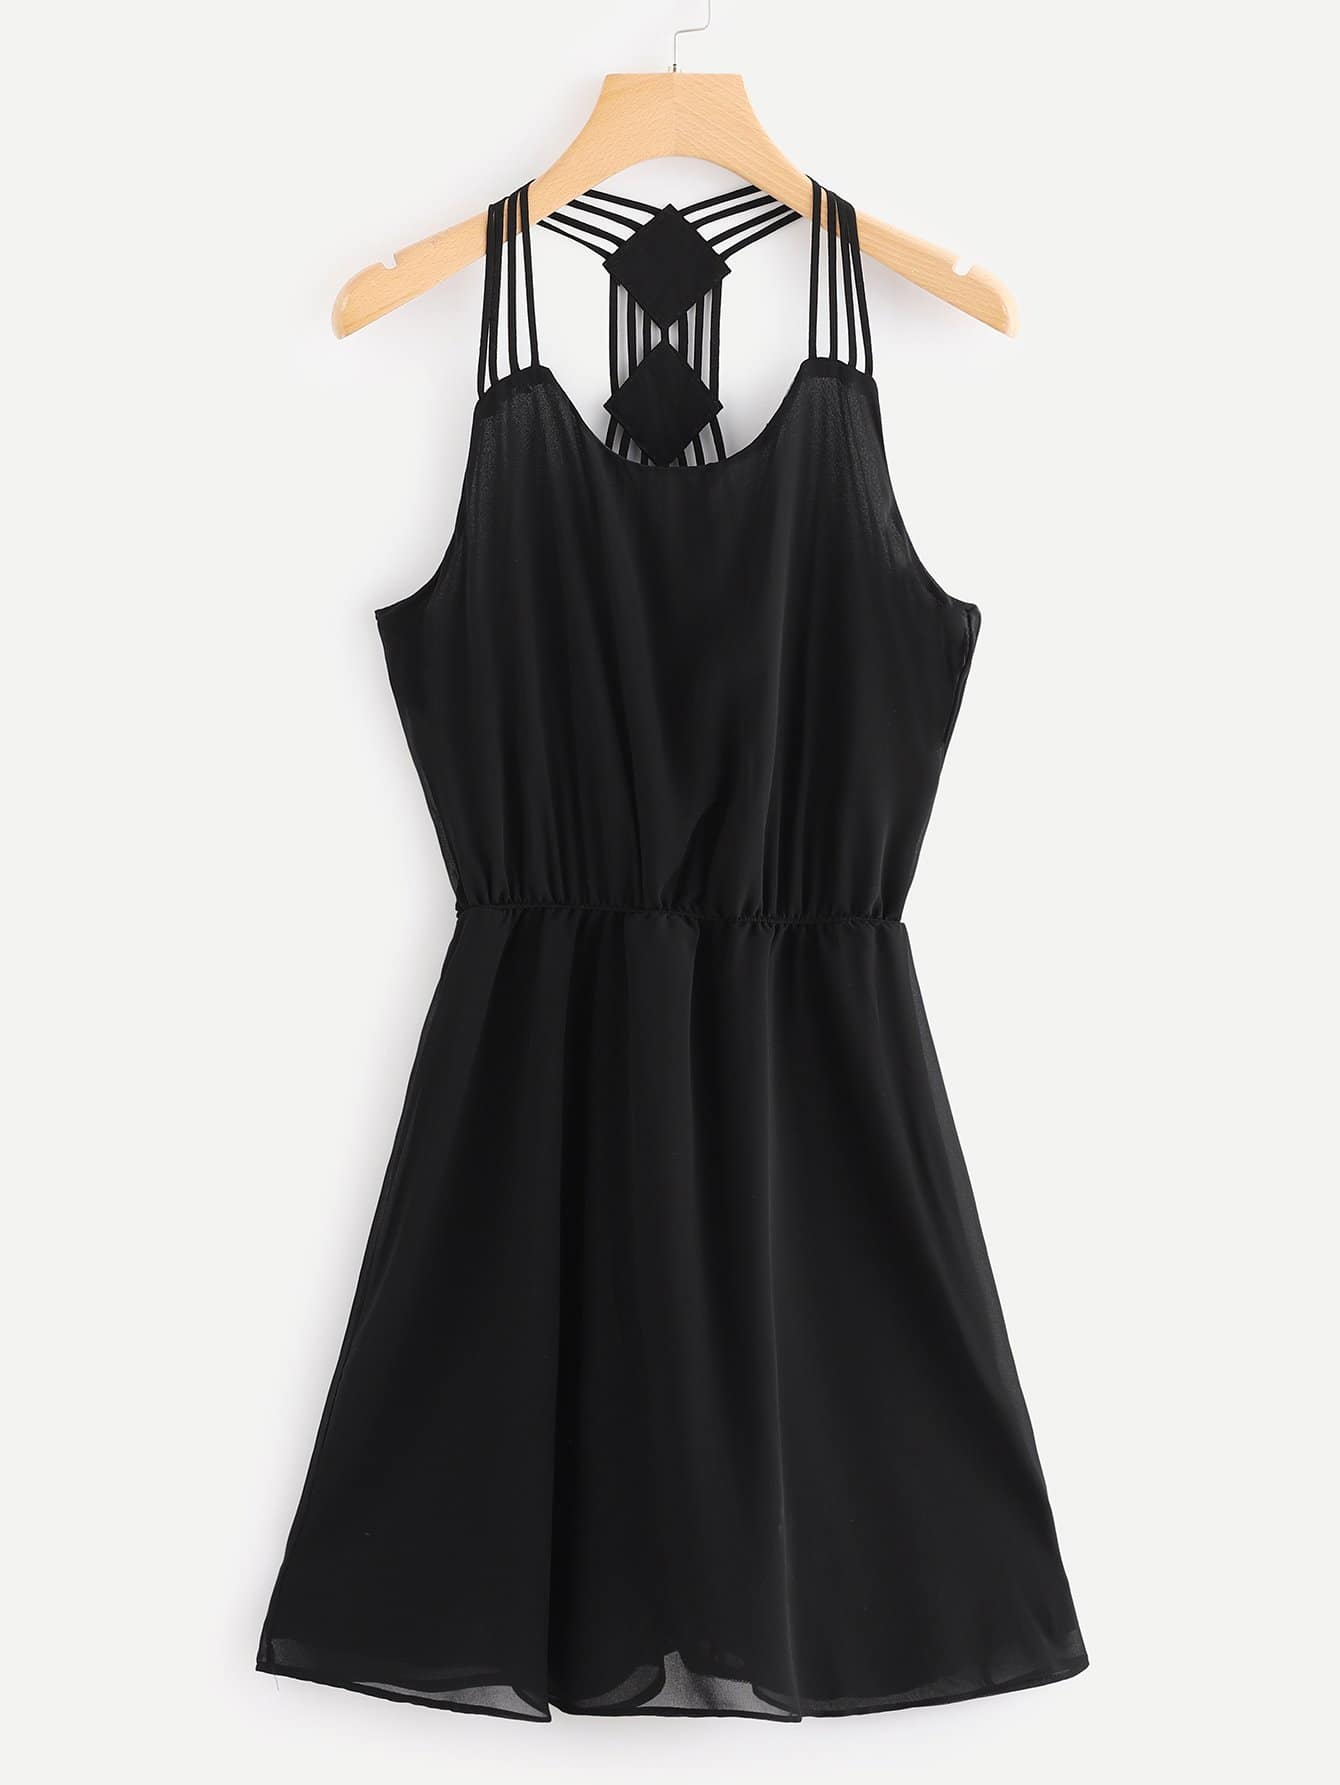 Strappy Detail Skater Dress strappy dress with lace up detail